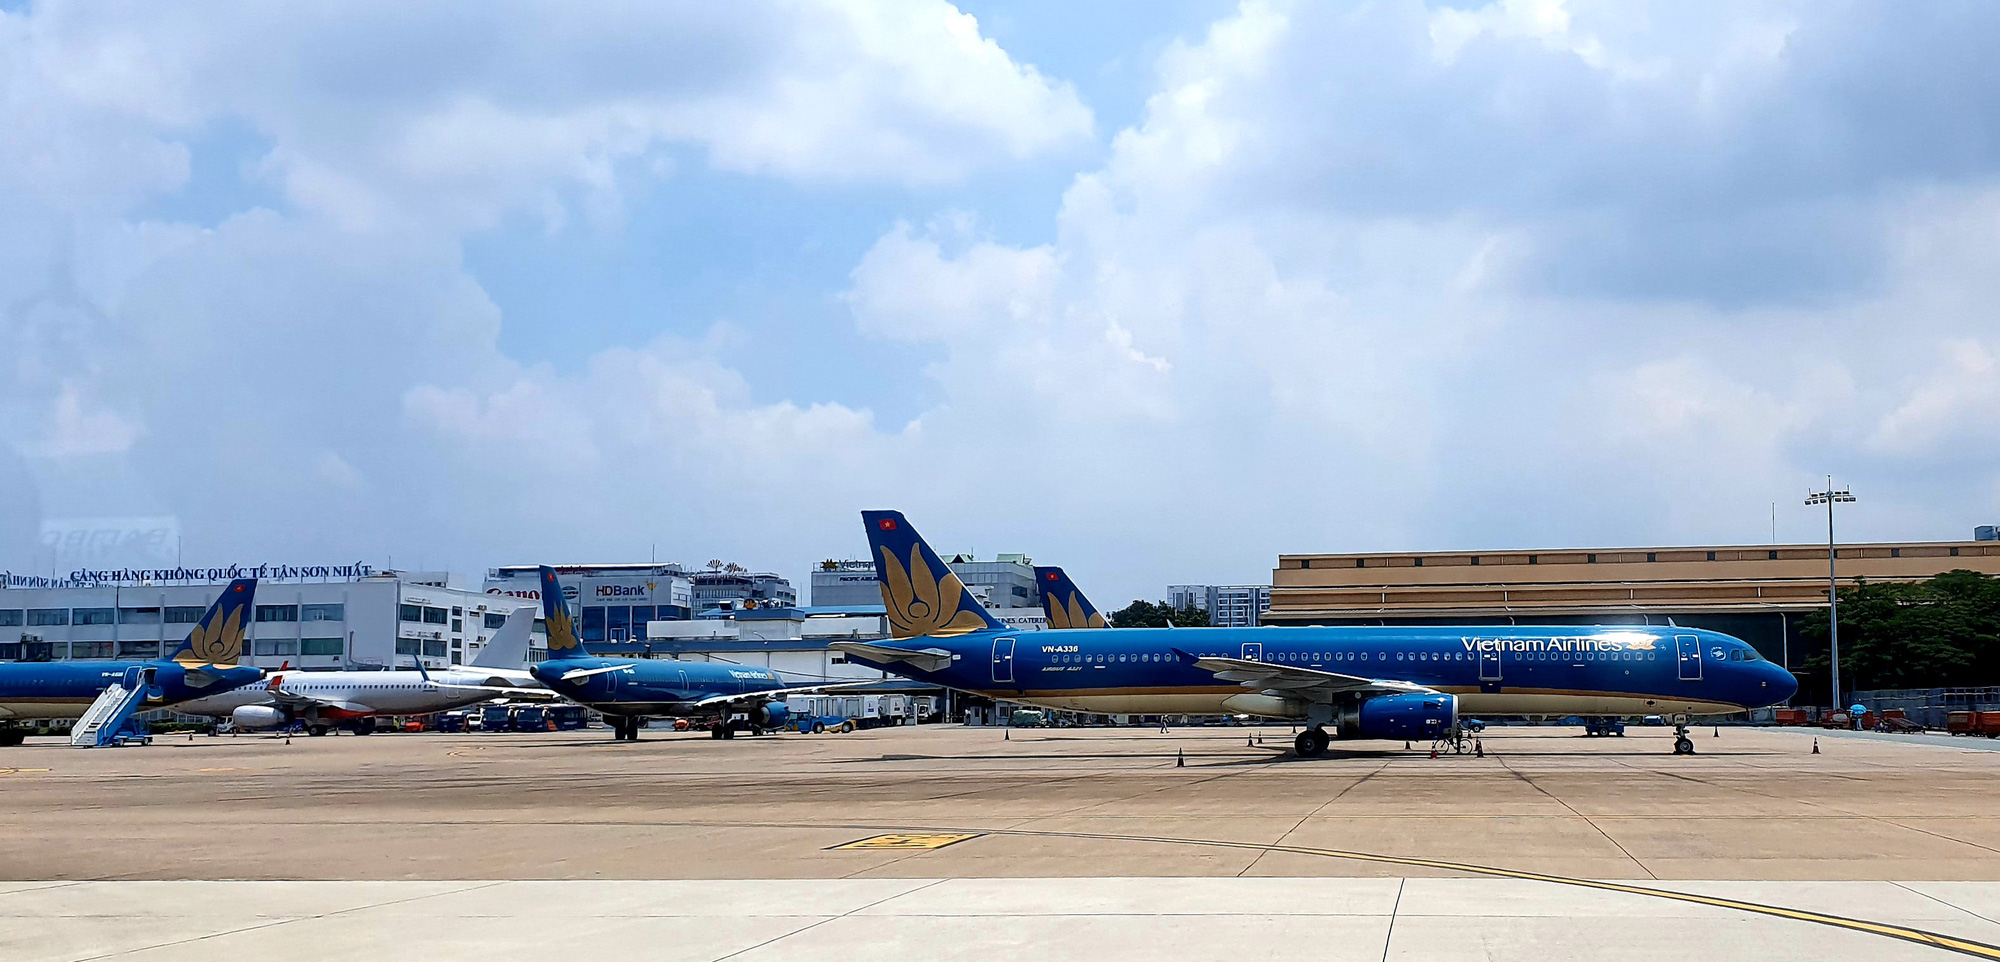 Ho Chi Minh City airport sees travel hit rock bottom